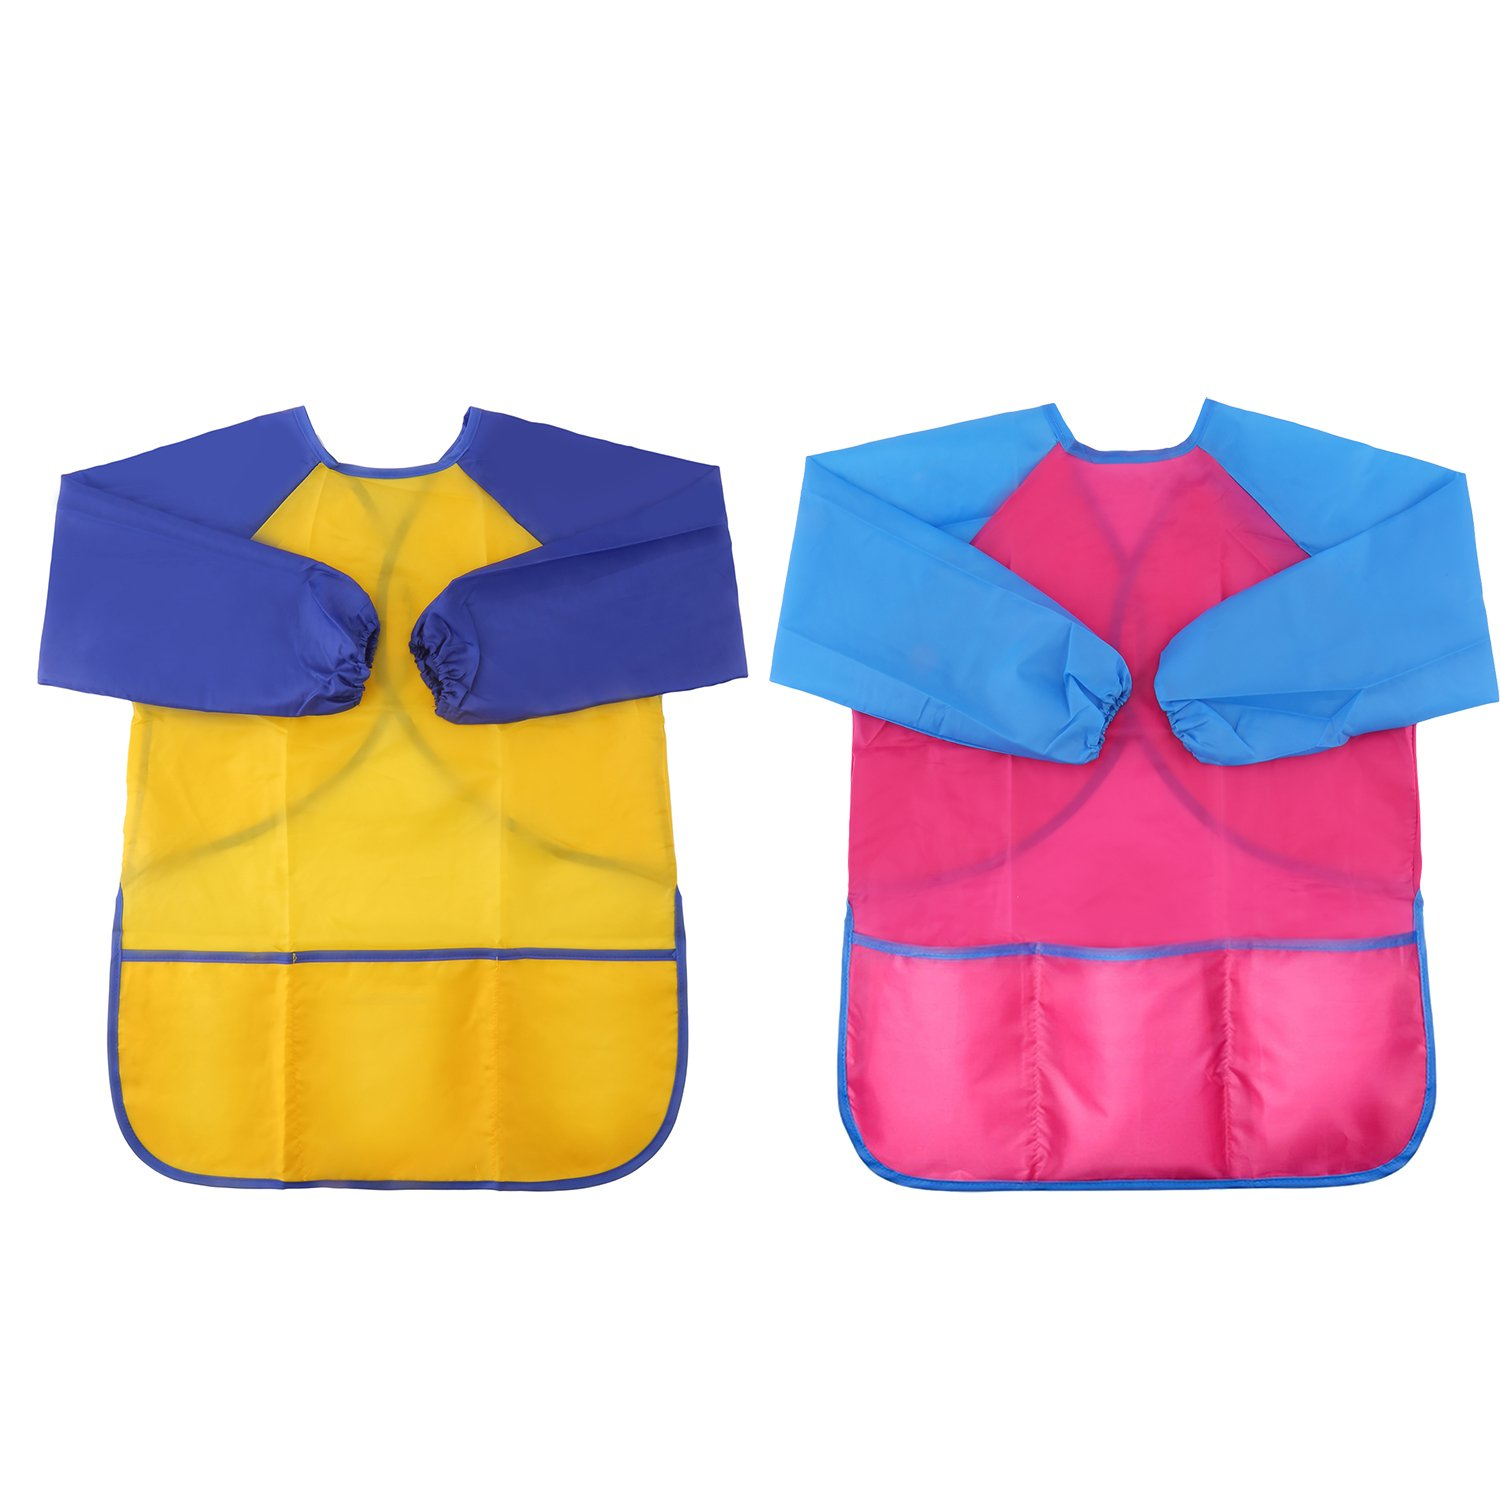 LOKIPA Waterproof Paint Apron for Kids, Children Art Smock Long Sleeve with 3 Roomy Pockets, Pack of 2 Suitable for 4-8 Years